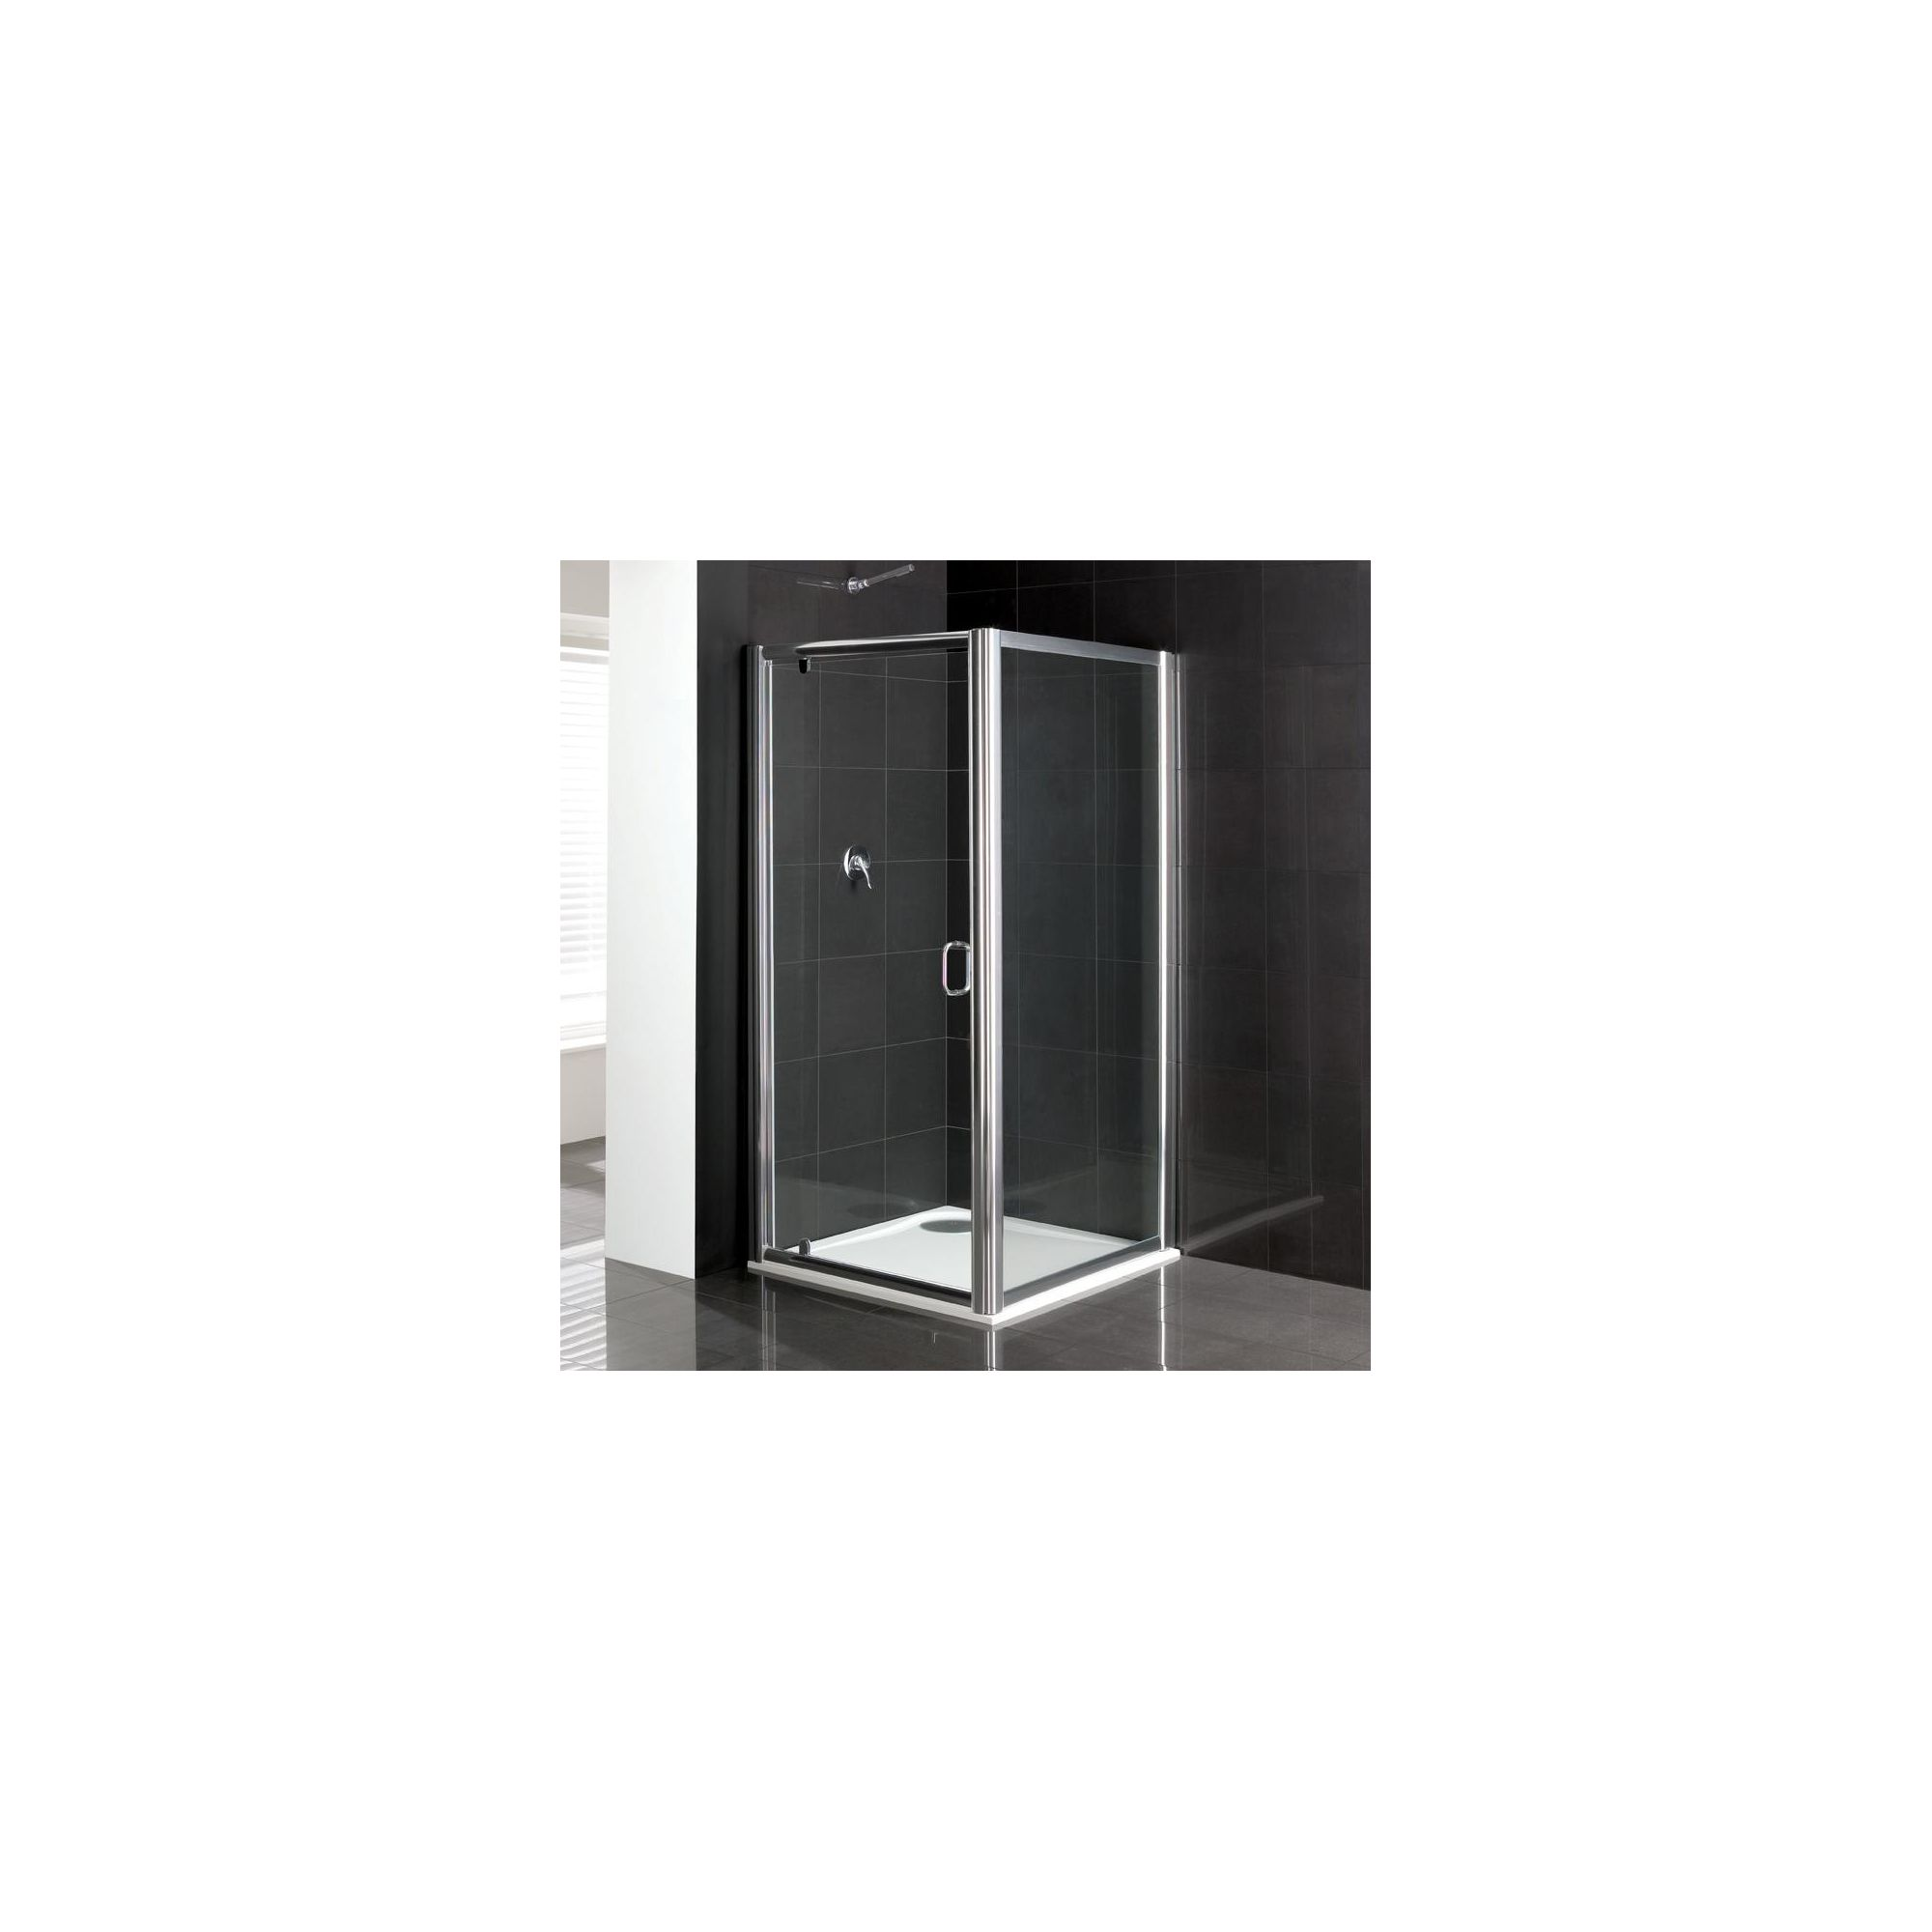 Duchy Elite Silver Pivot Door Shower Enclosure with Towel Rail, 800mm x 700mm, Standard Tray, 6mm Glass at Tesco Direct